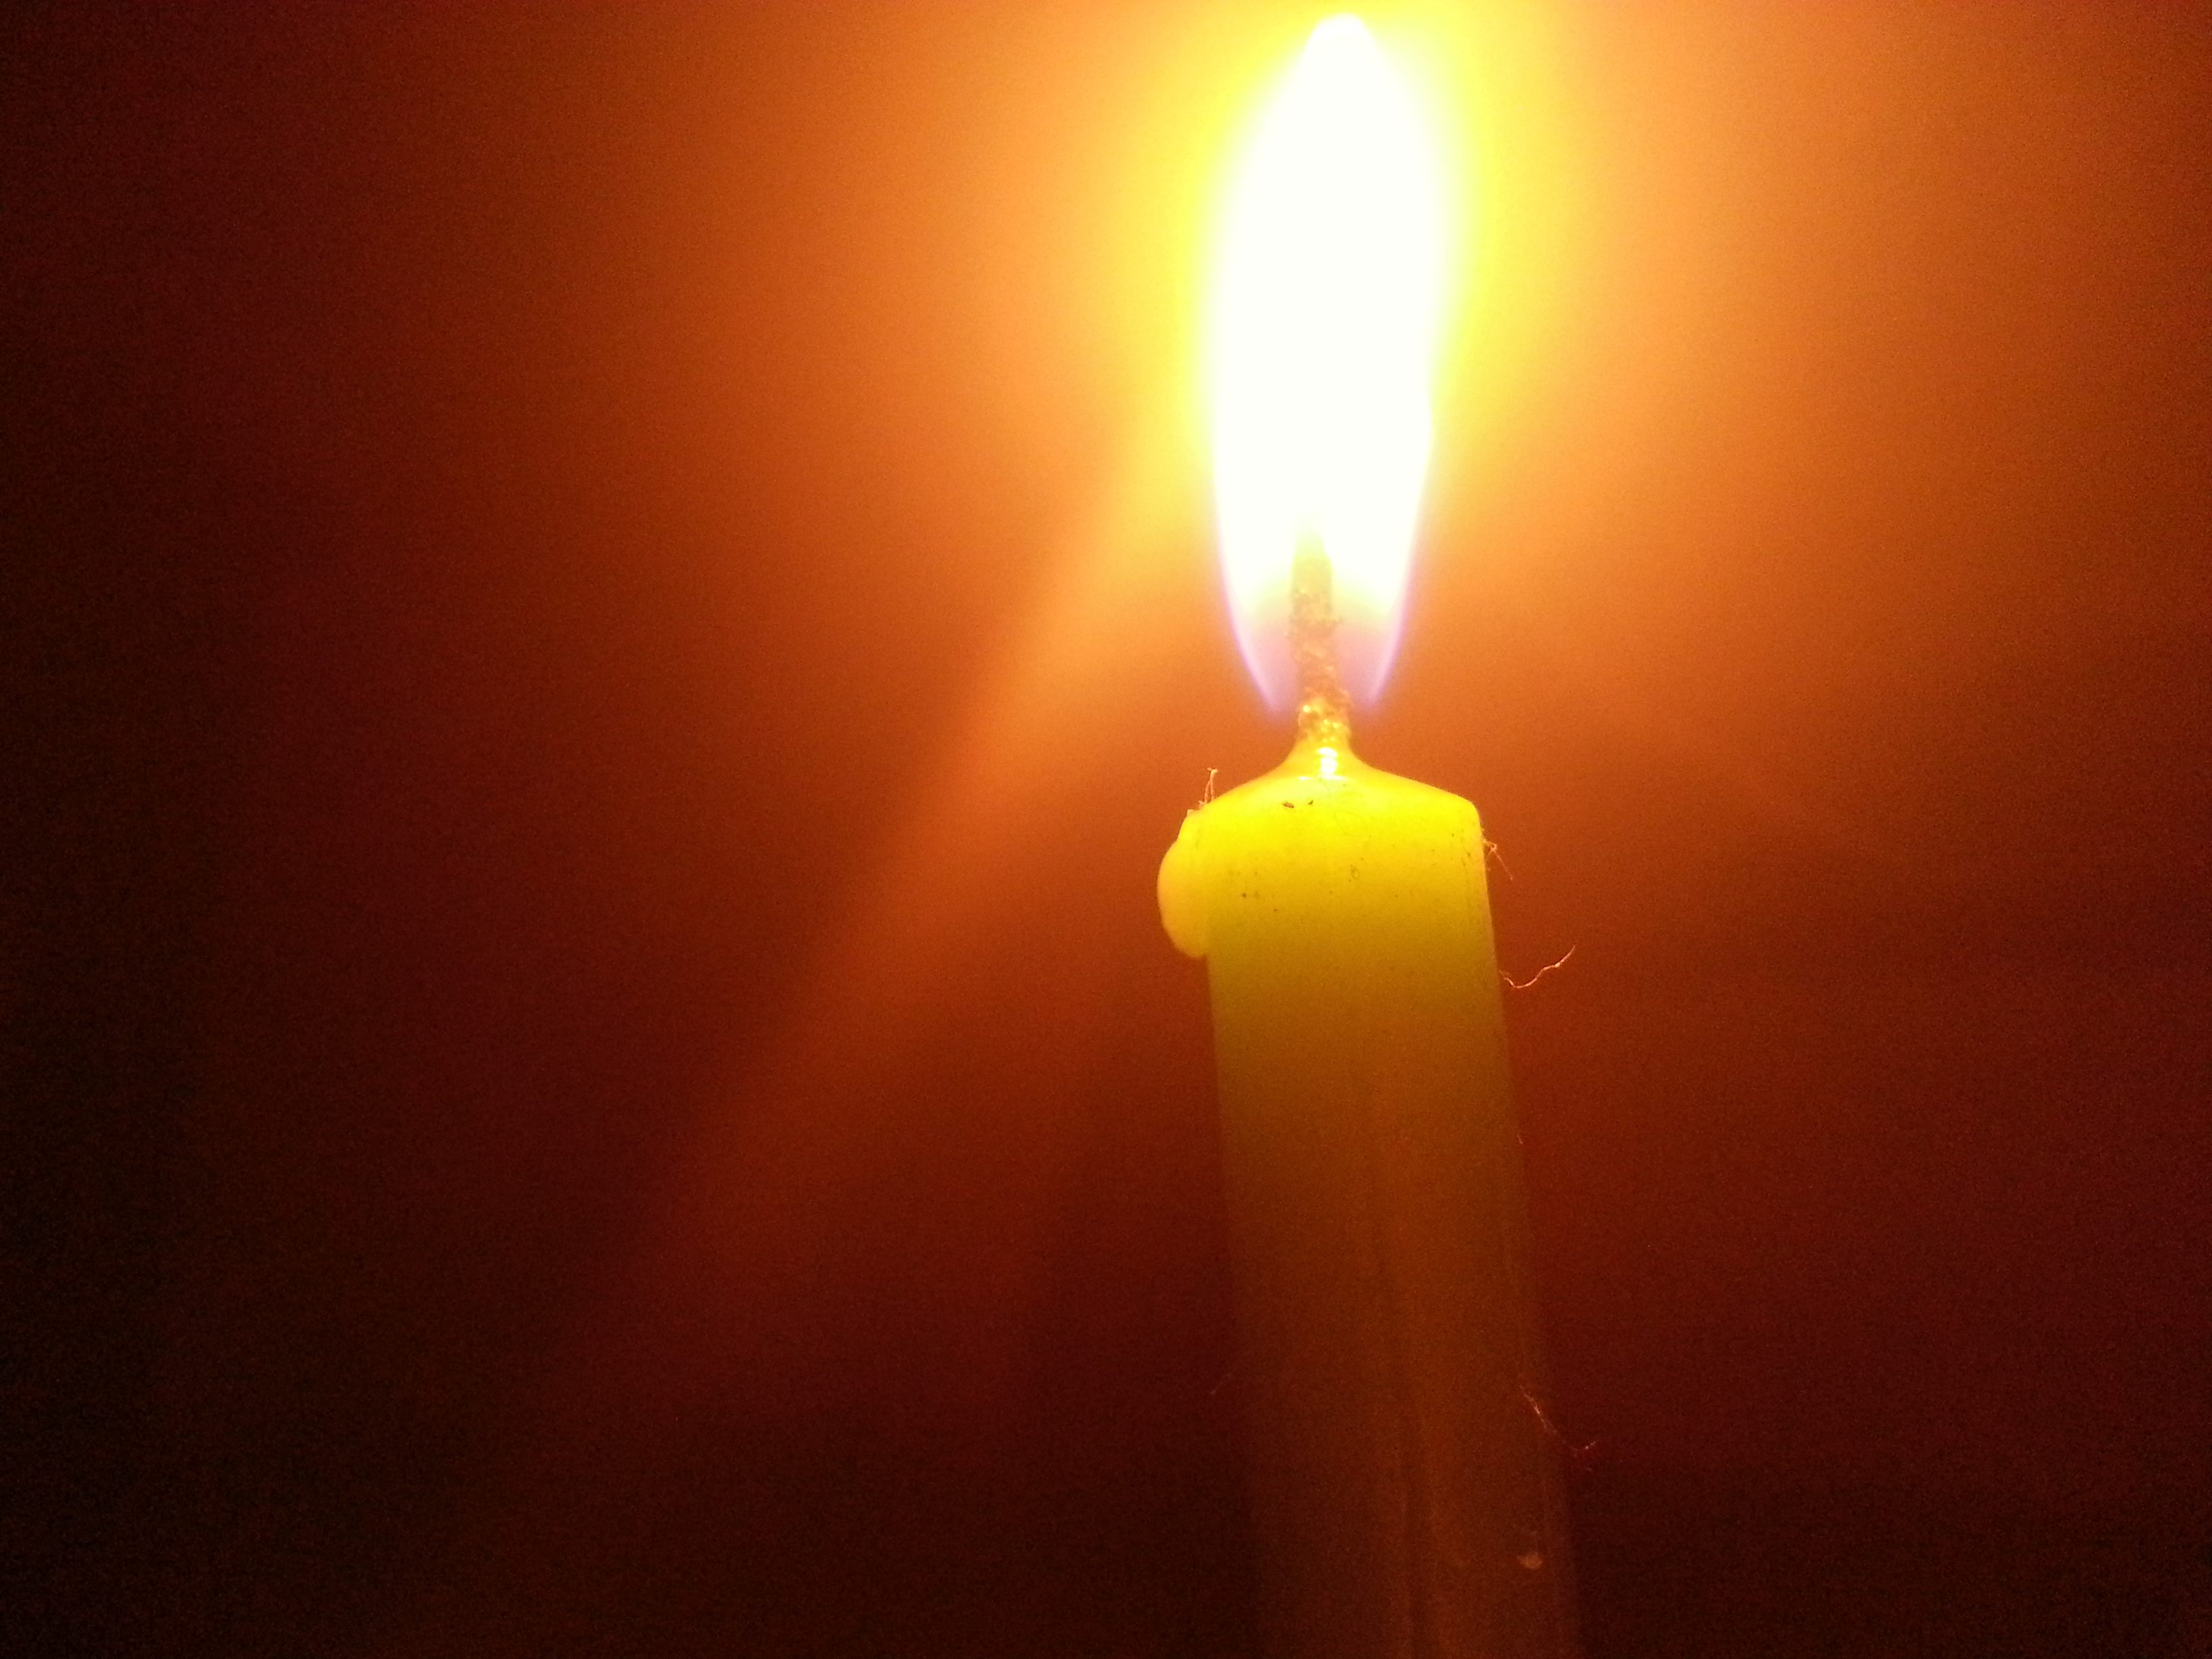 Candle Light, Light, Hope, Flame, Candle, HQ Photo